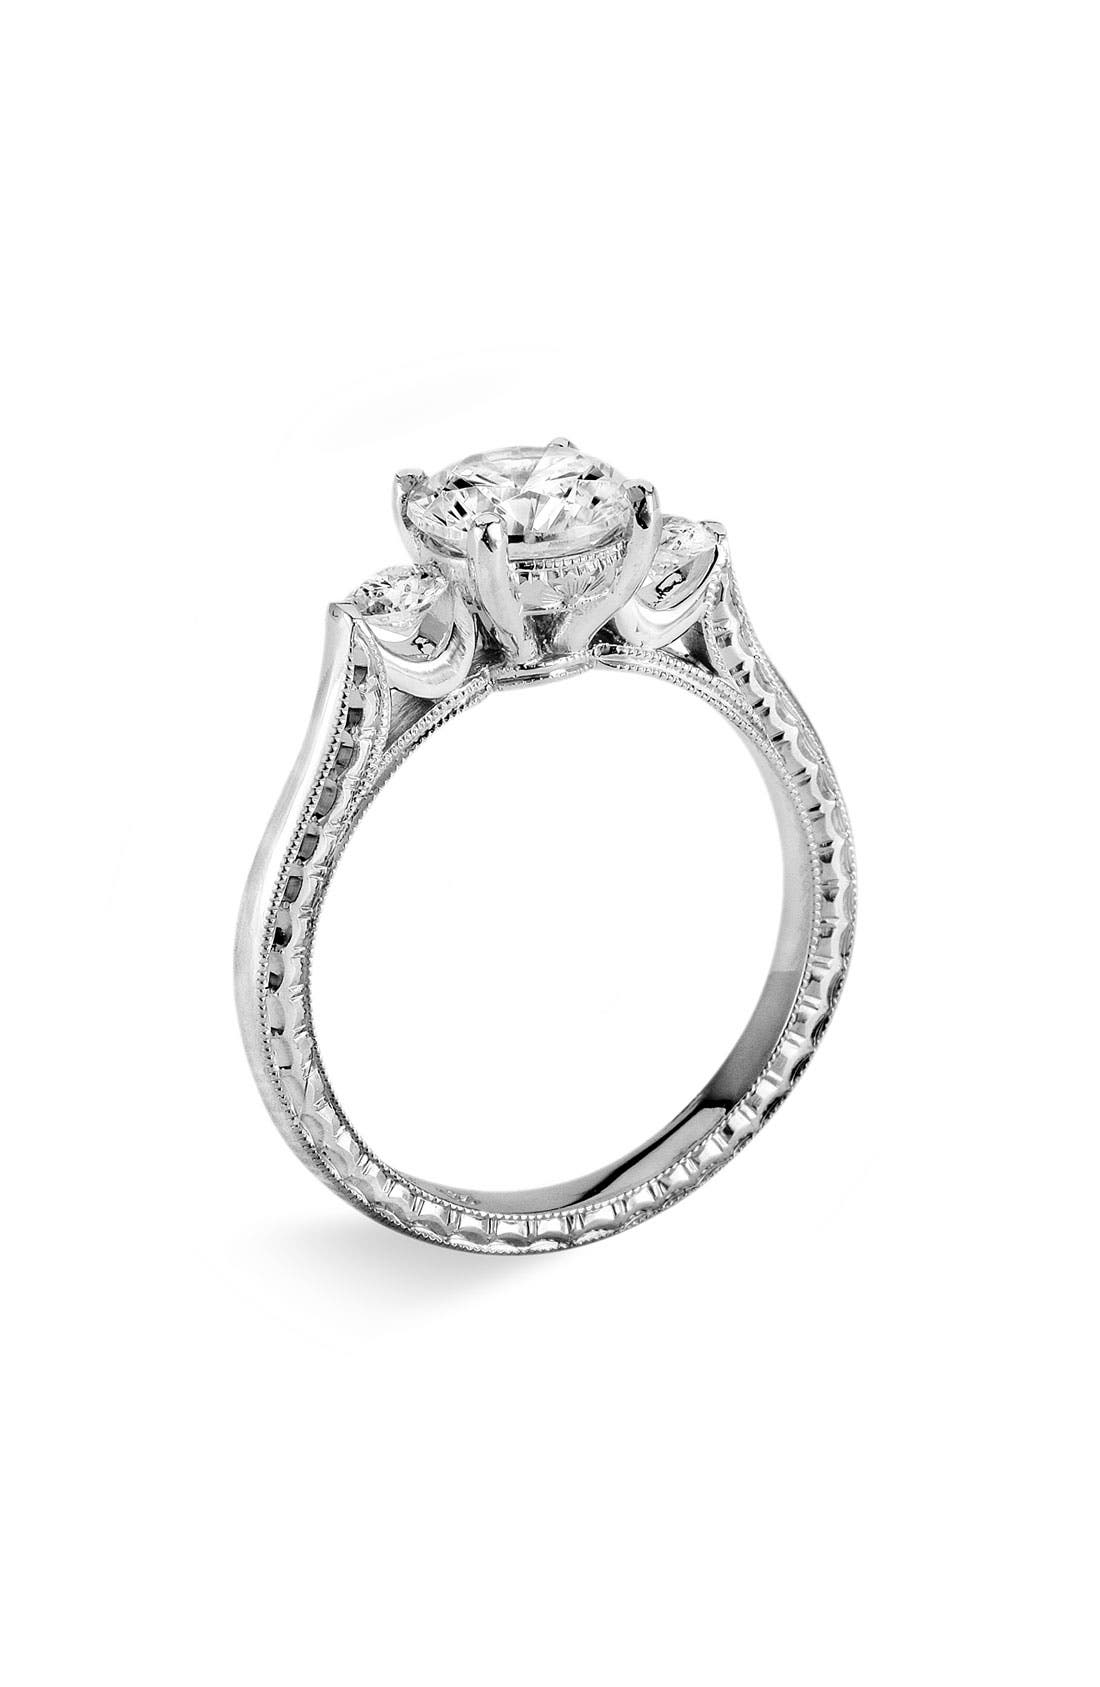 Alternate Image 1 Selected - Jack Kelége 'Silhouette' Platinum 3-Stone Engagement Ring Setting